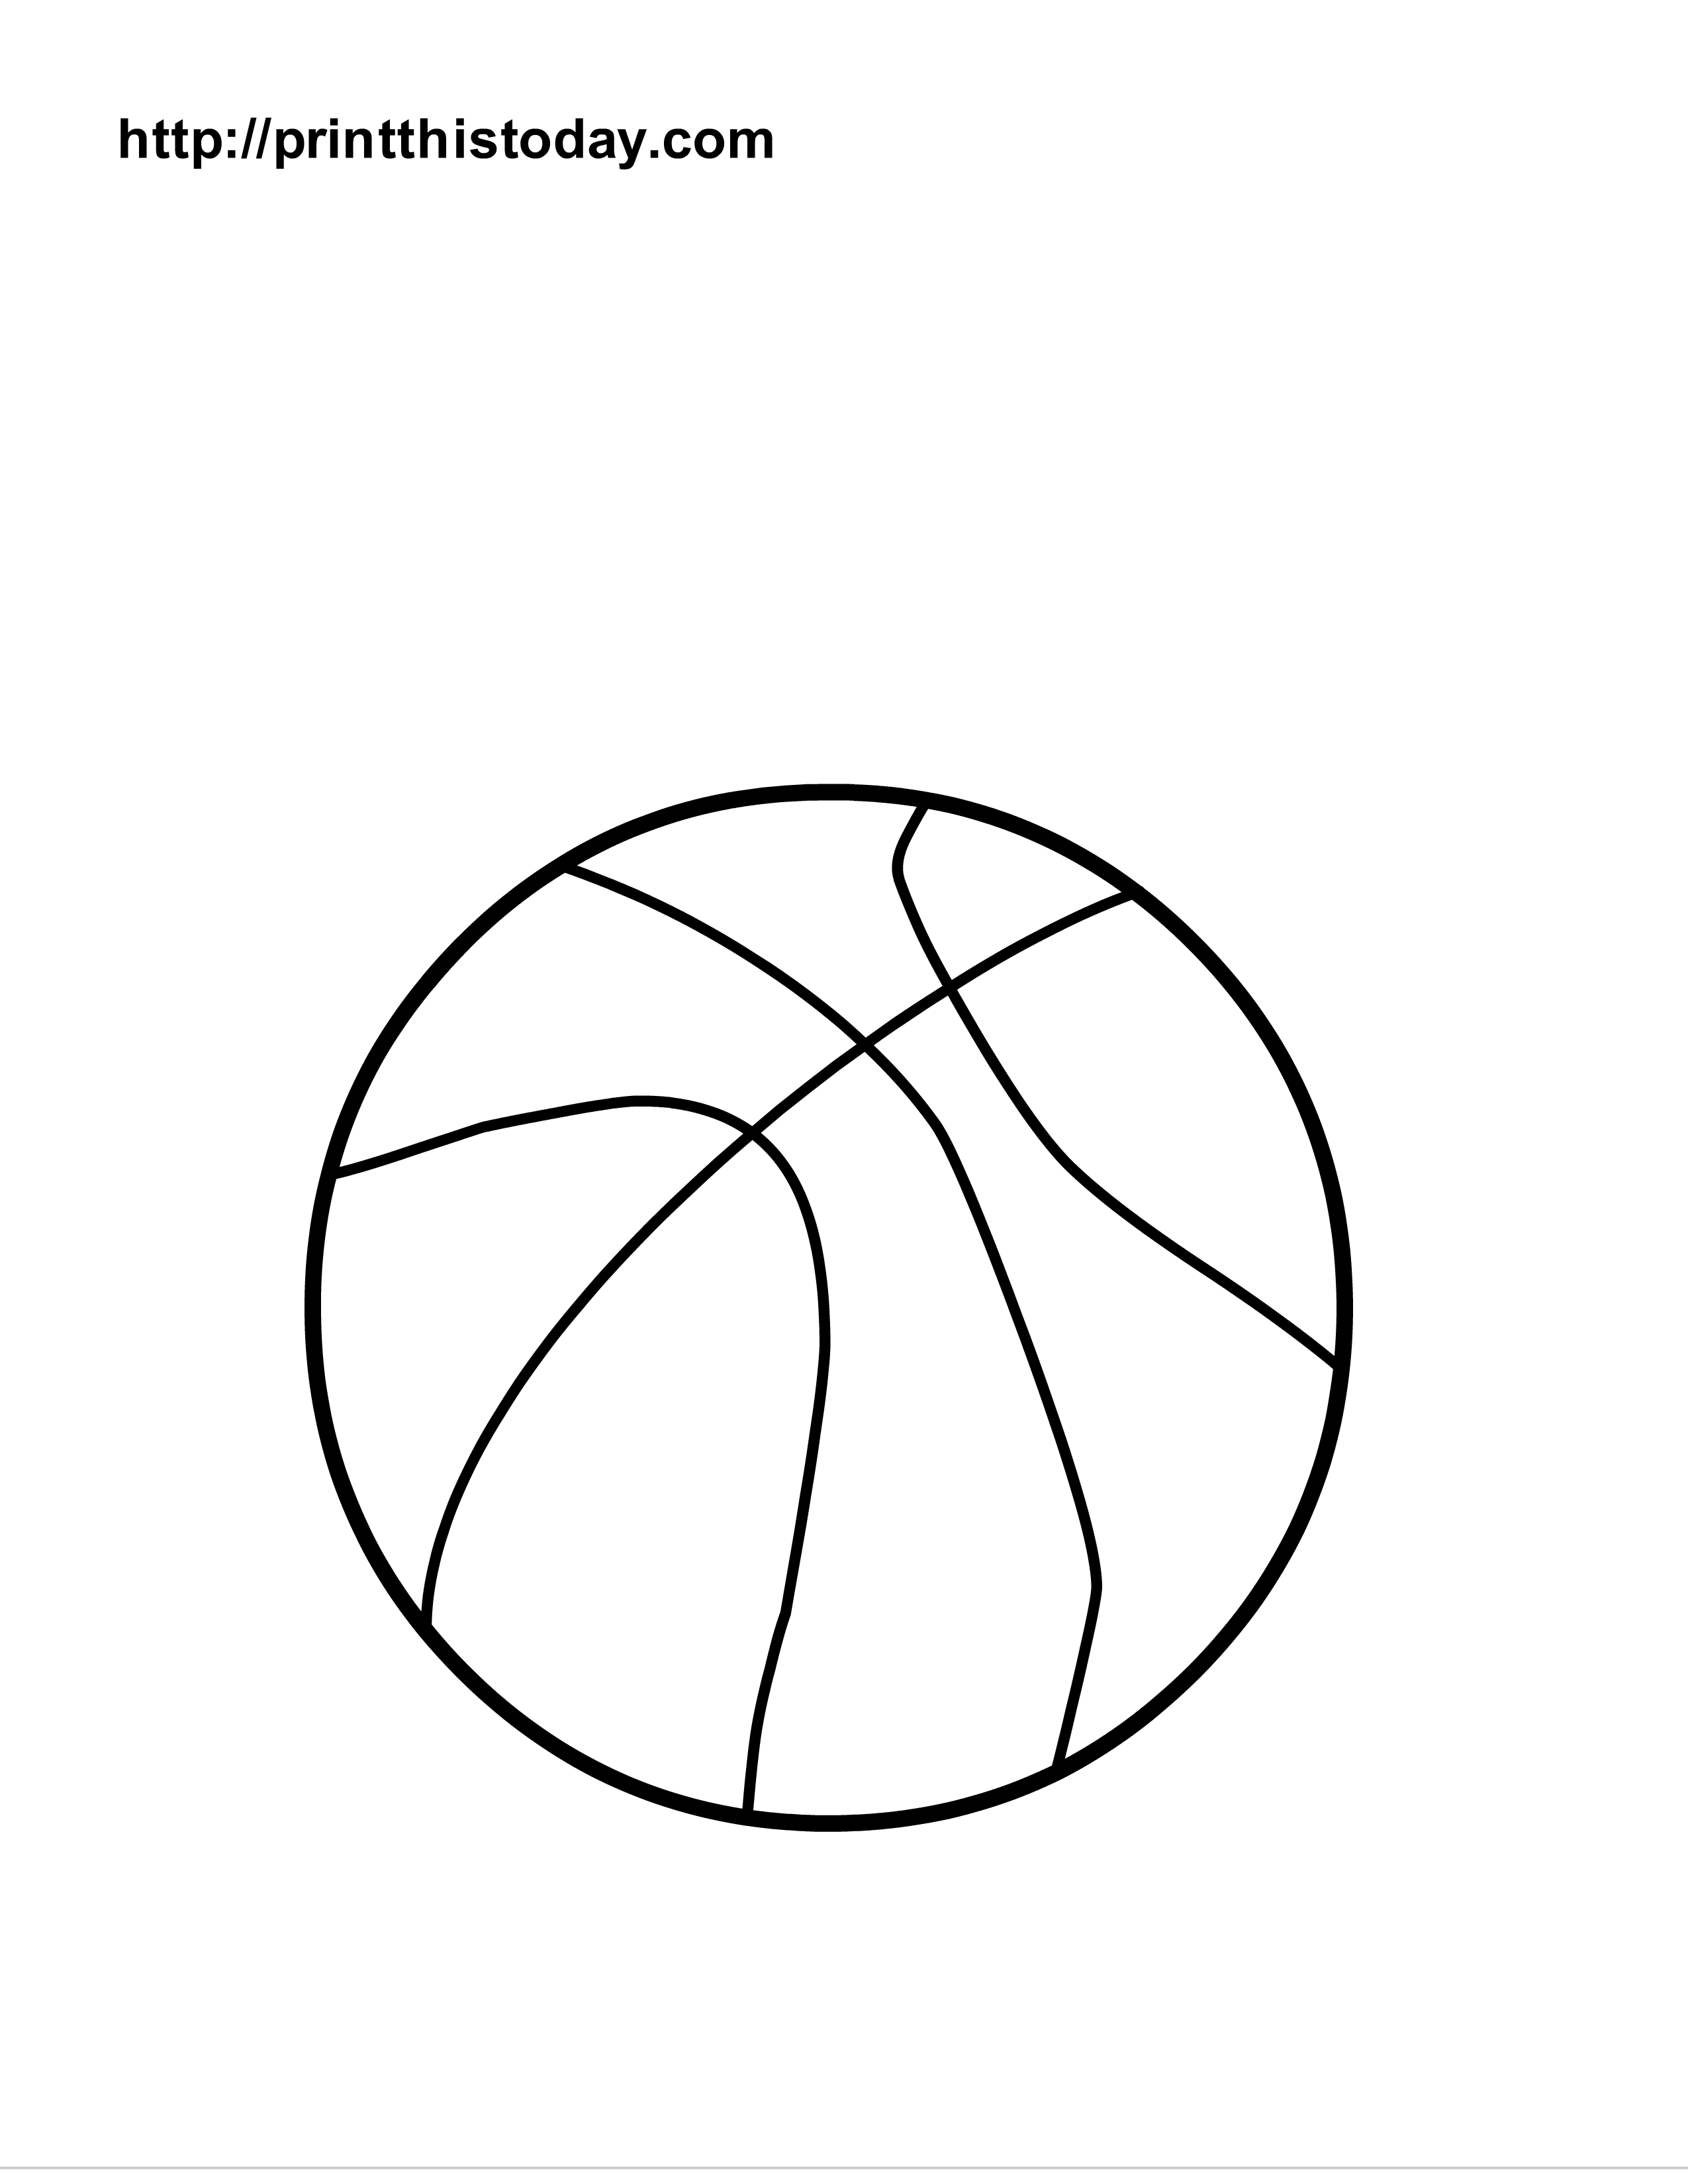 5 Images of Printable Ball Coloring